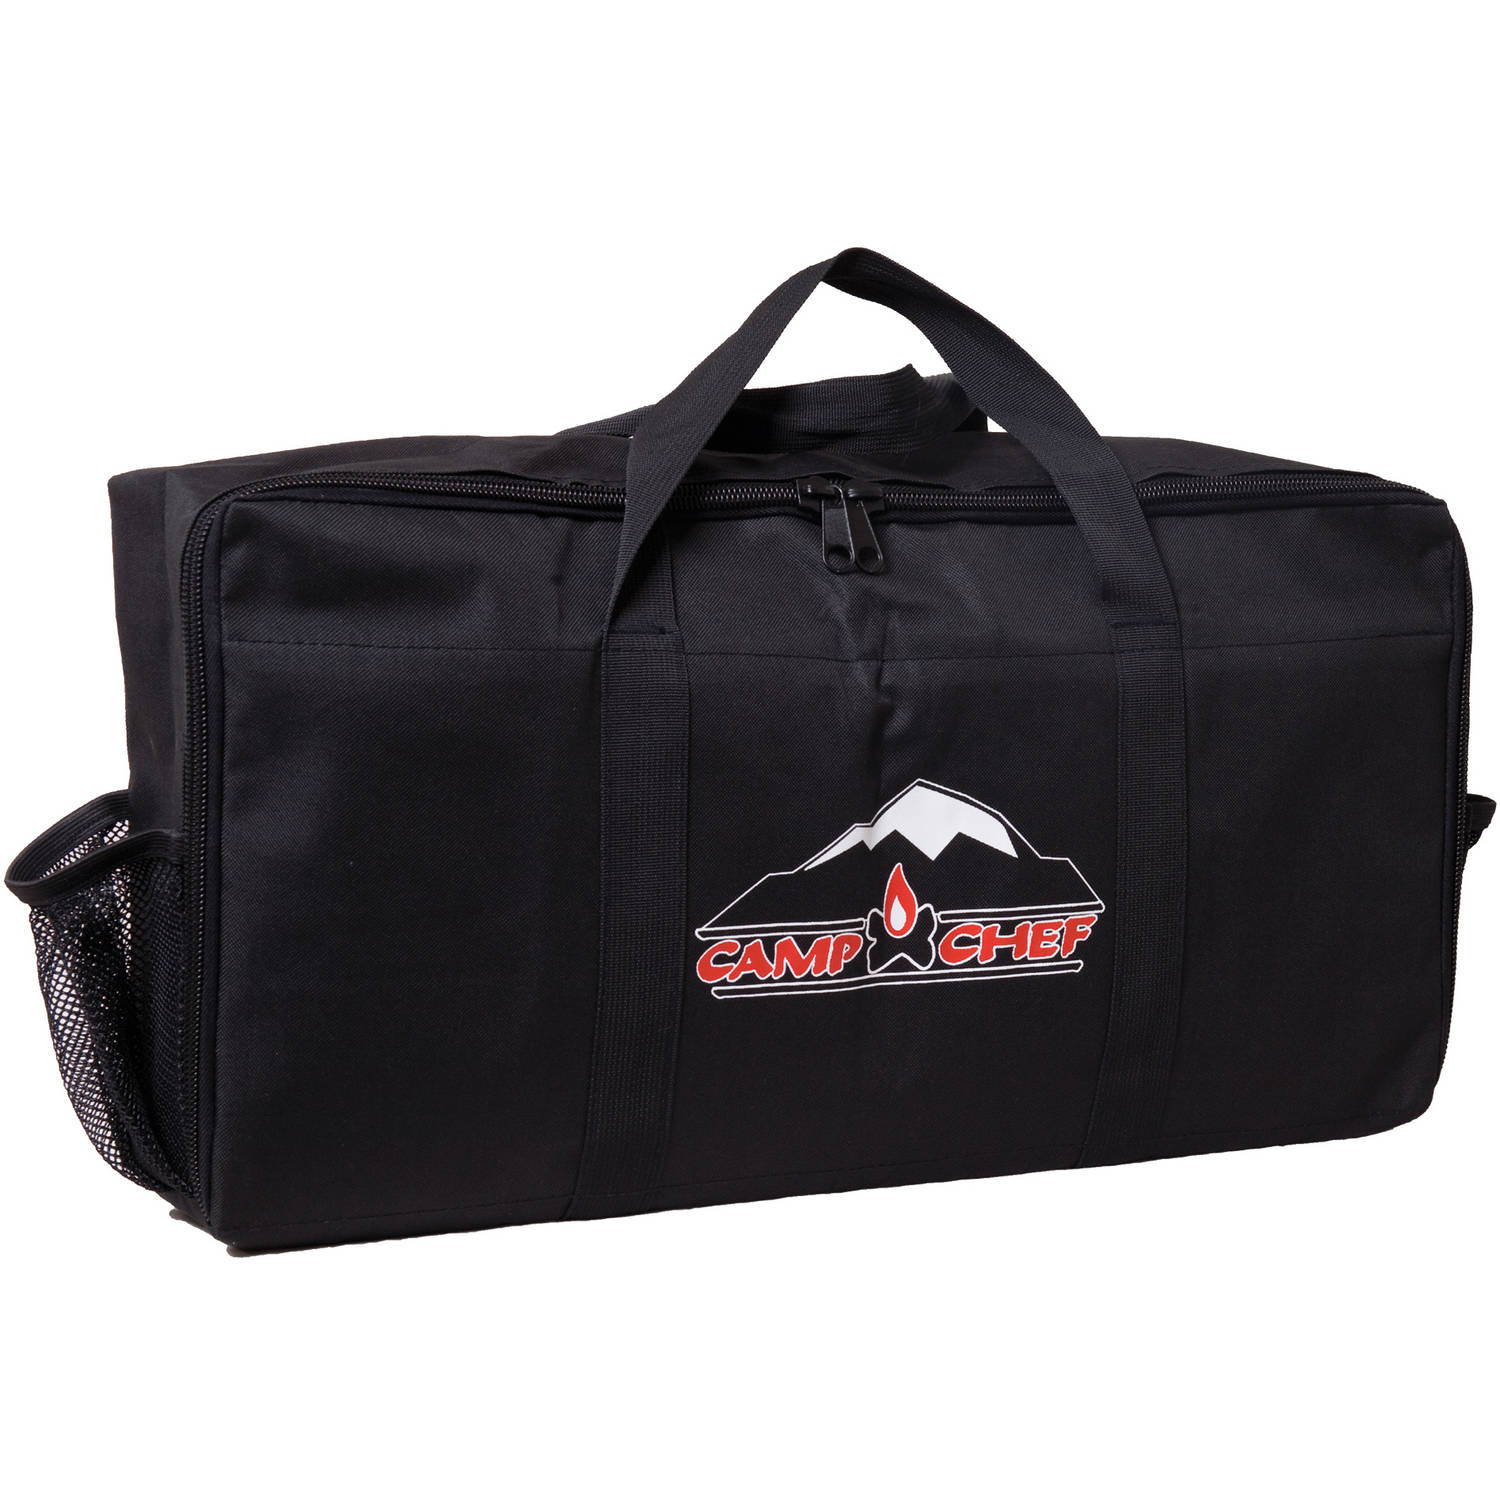 Camp Chef Mountain Stove Carry Bag with Mesh Pockets by Camp Chef